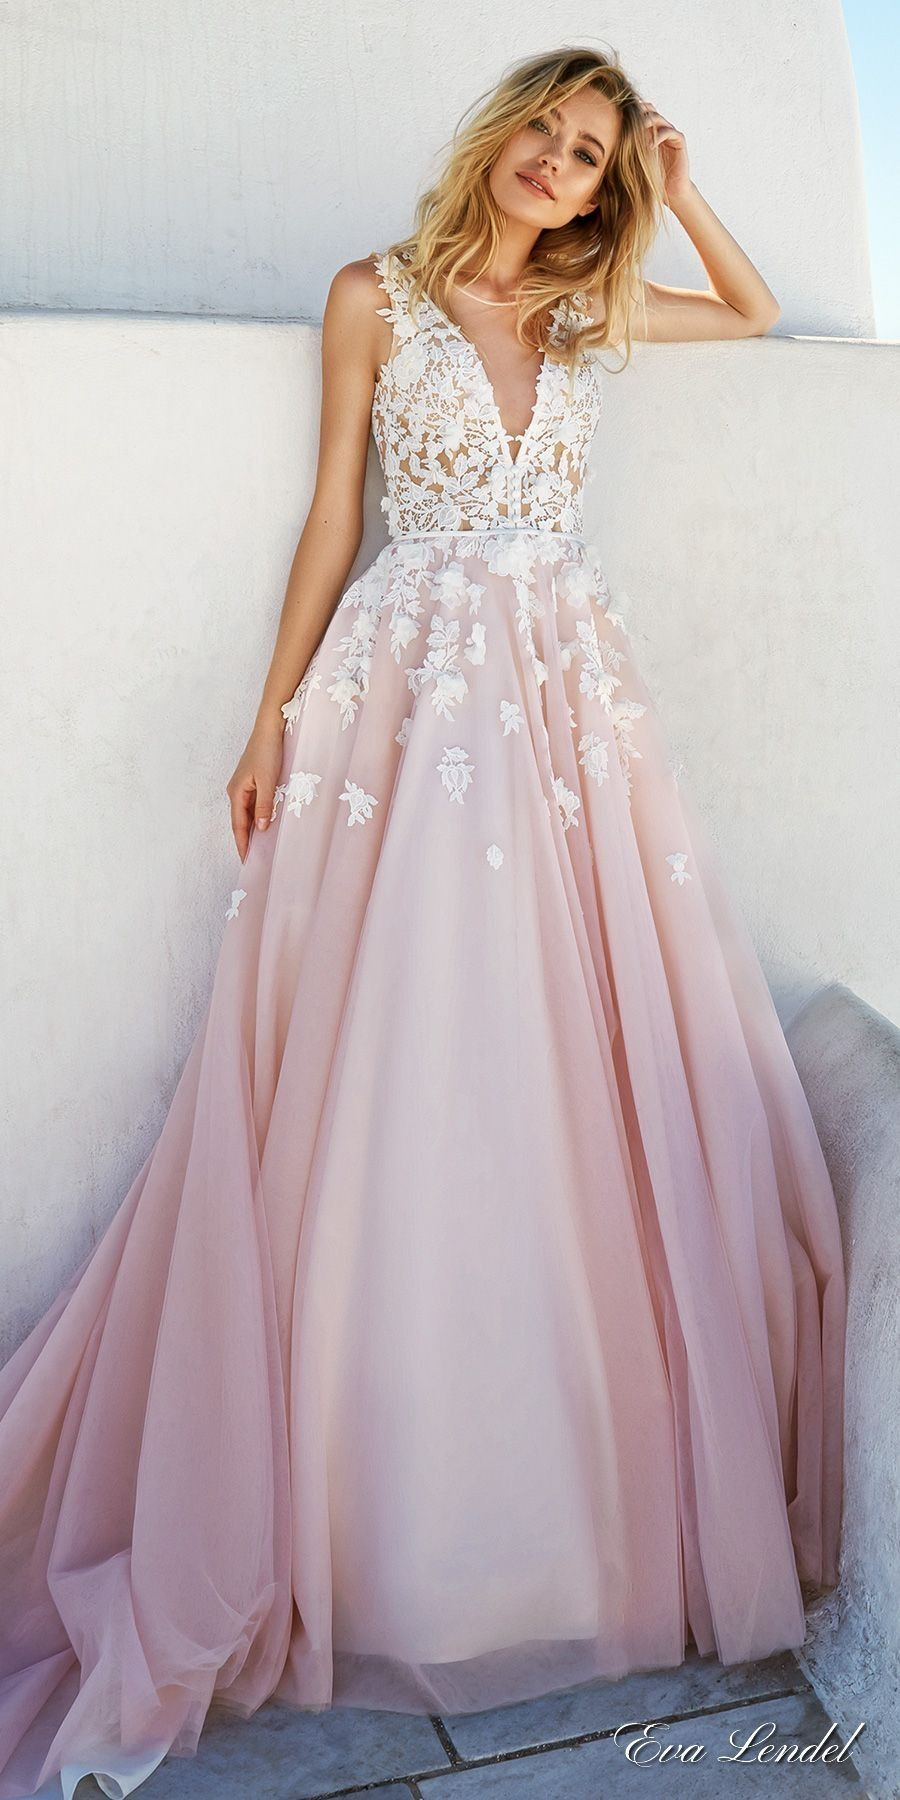 Eva Lendel 2017 | Pretty pink a-line wedding dress with embellished bodice